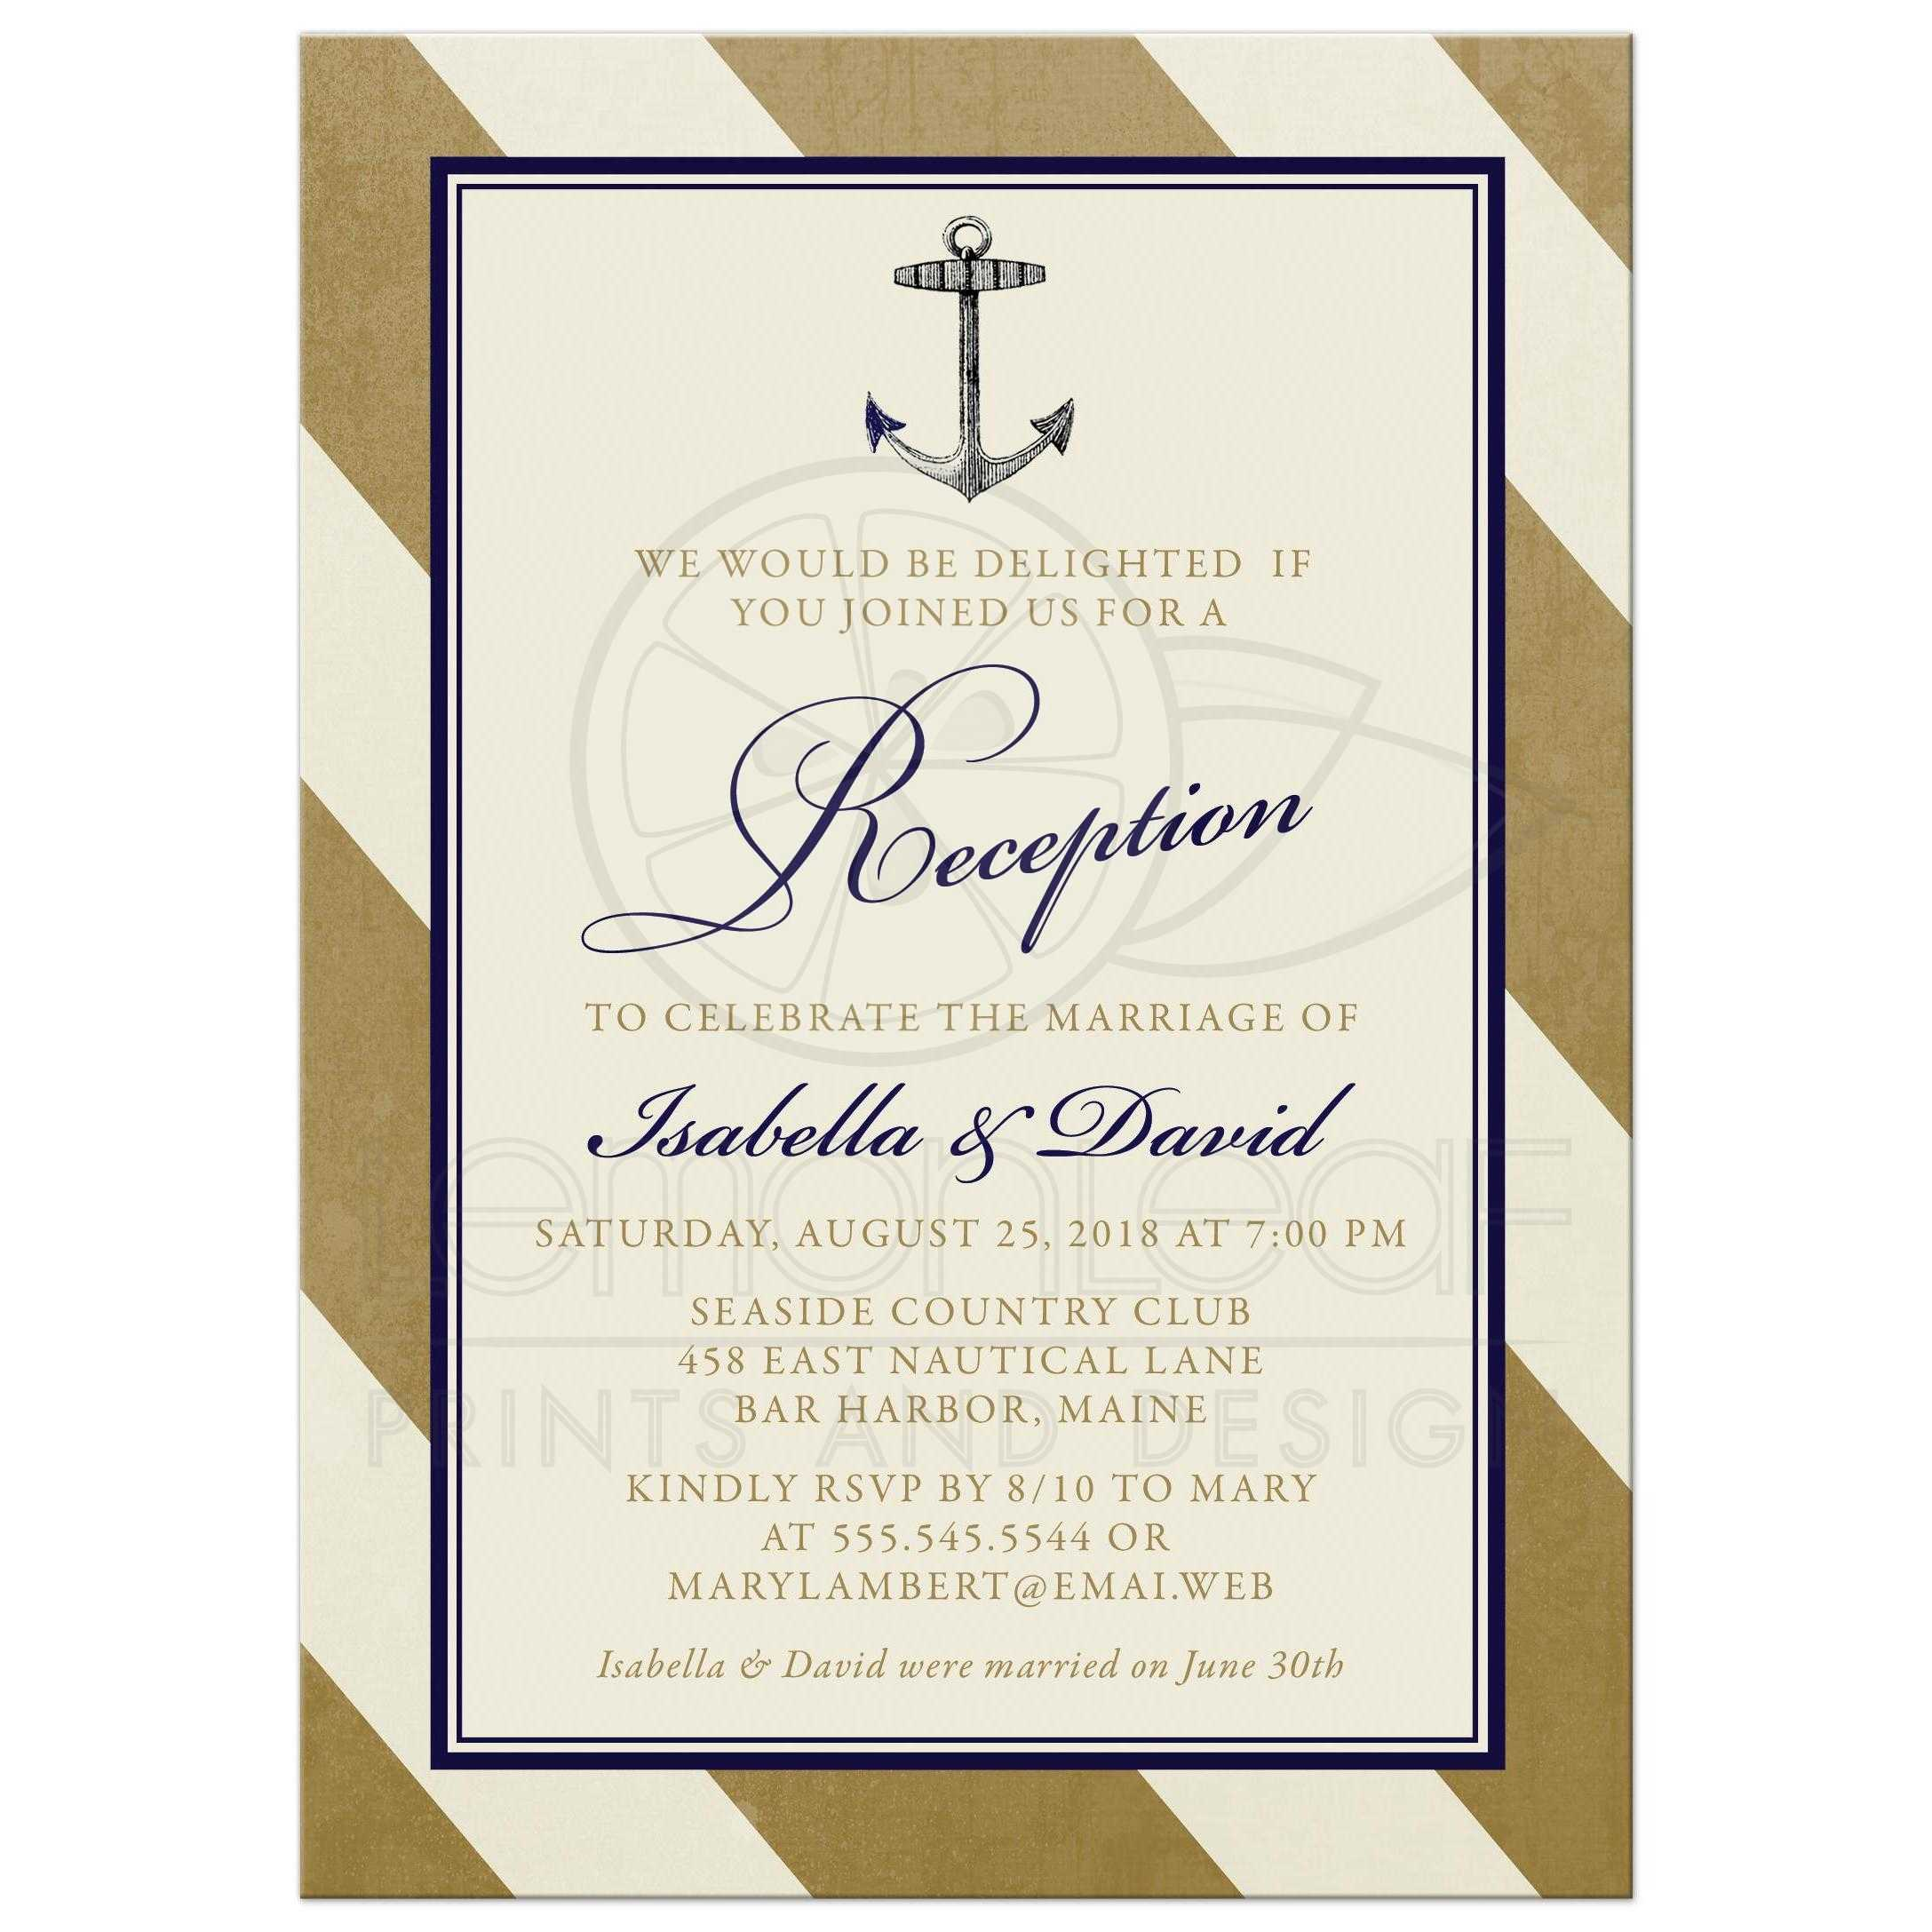 How To Word A Wedding Invitation For Reception Only - New Wedding